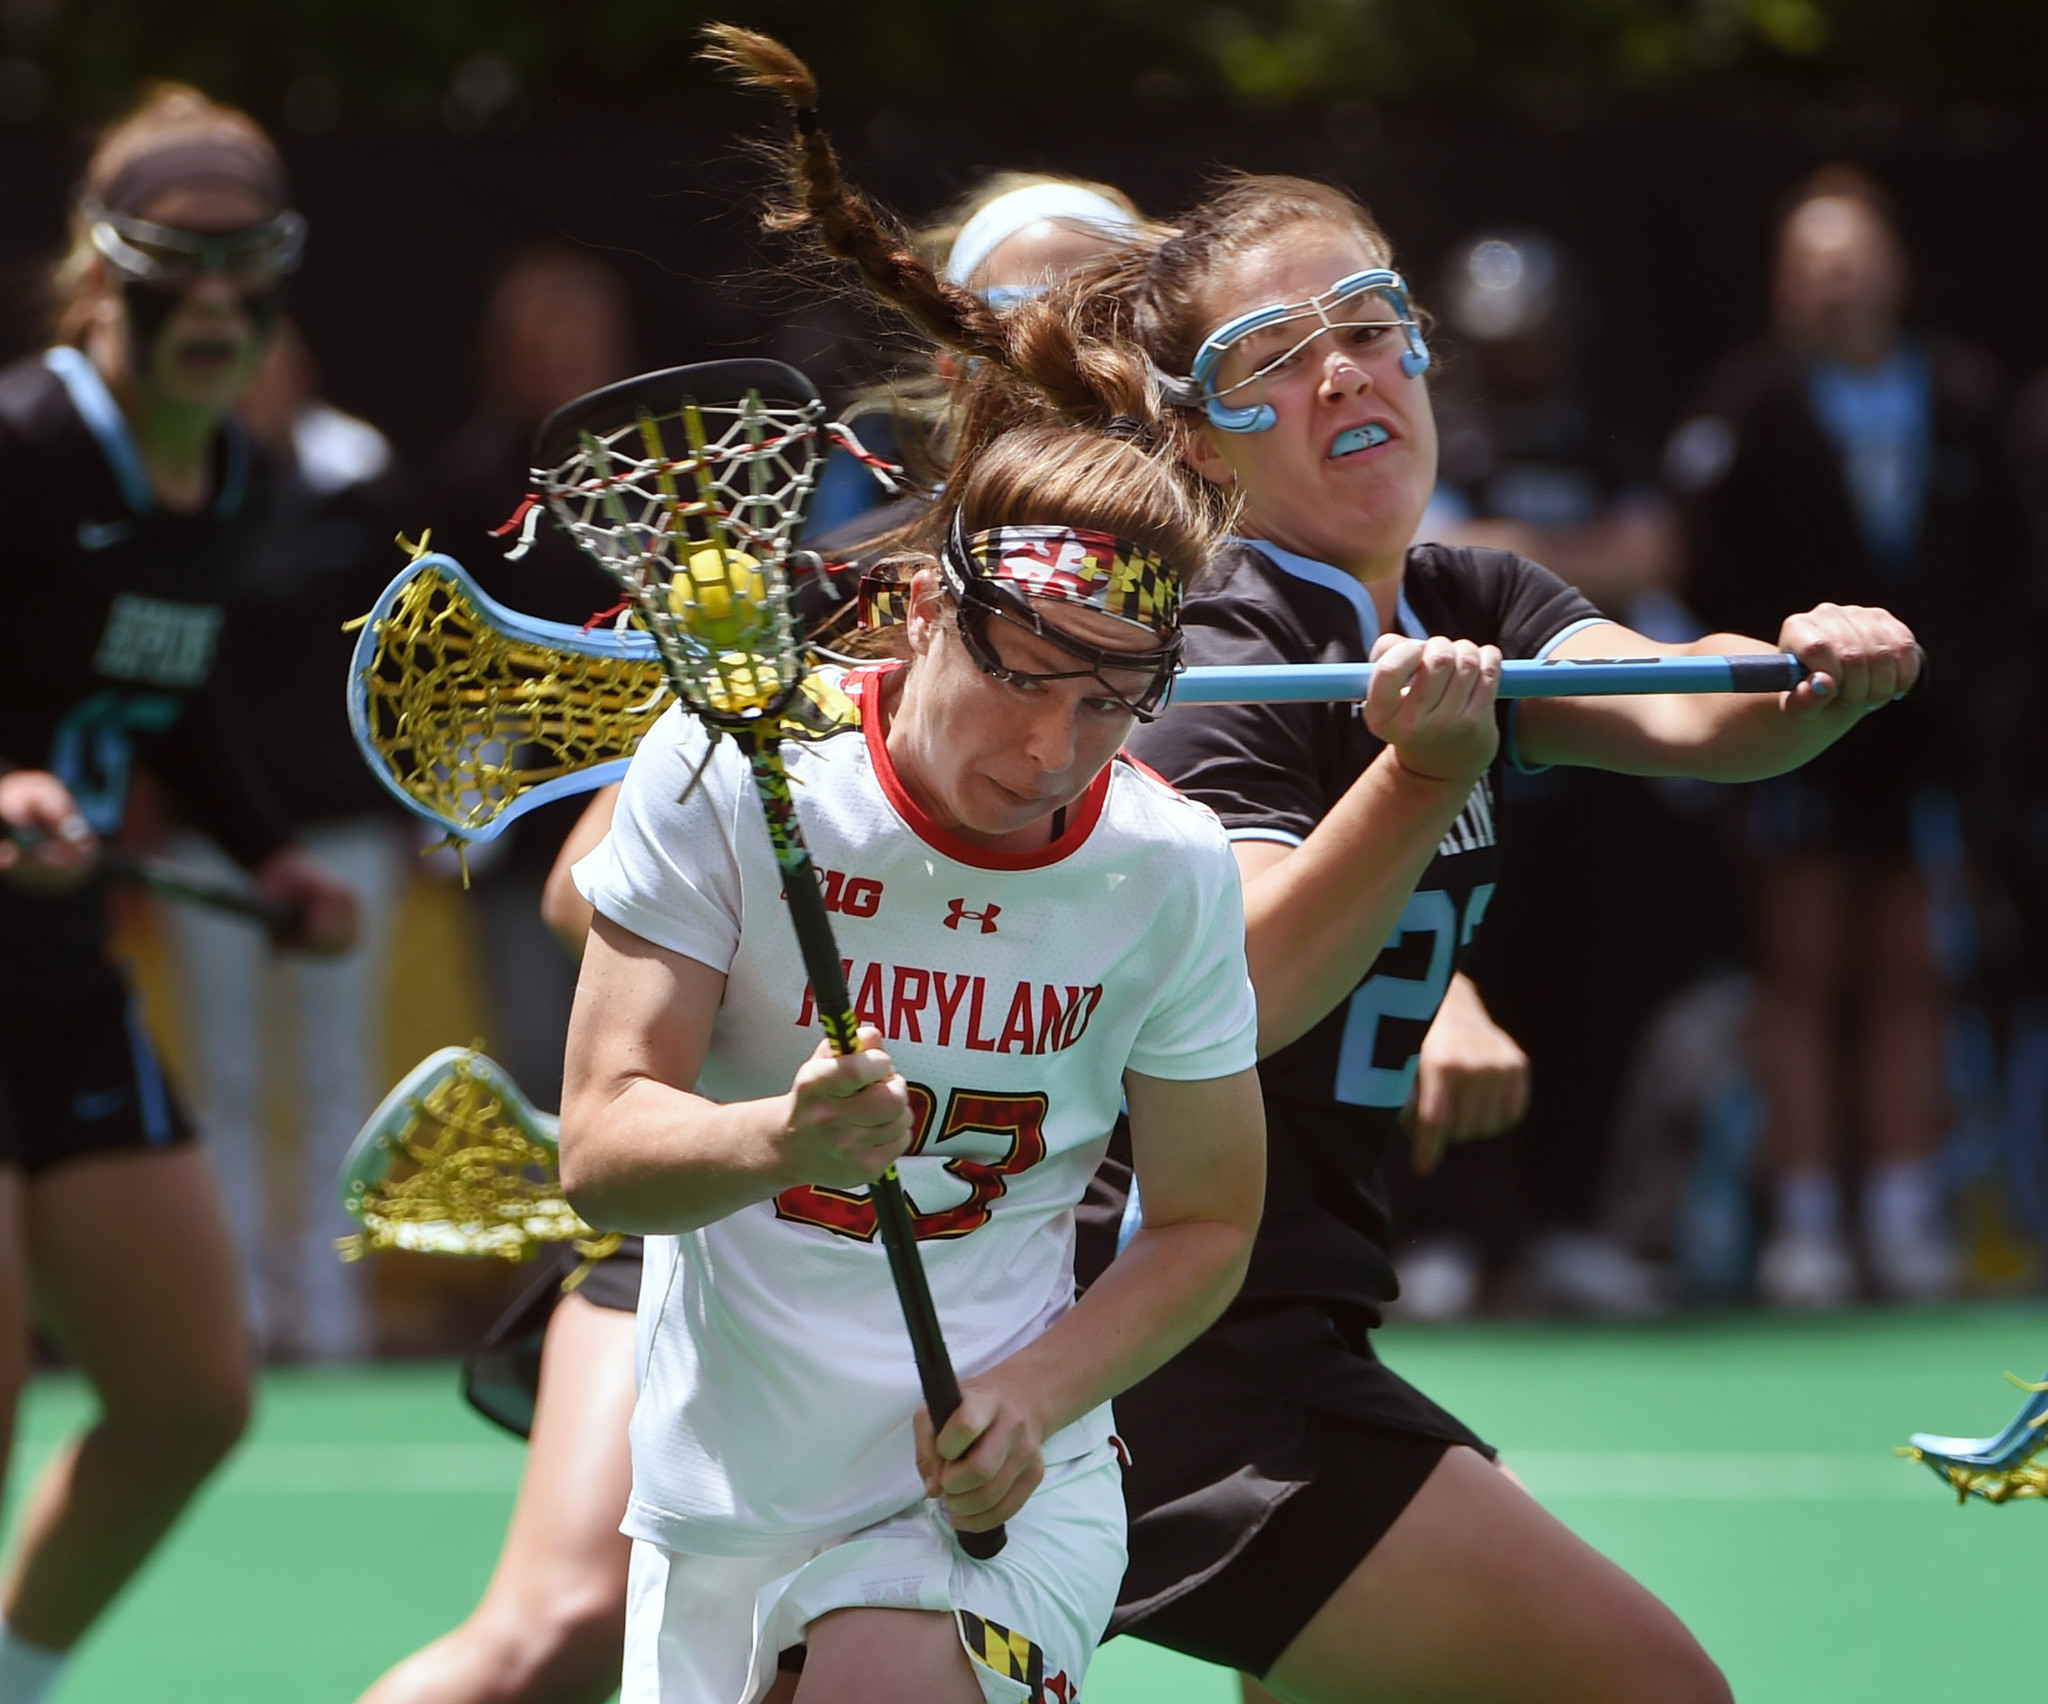 Bal-terps-cummings-mercer-whittle-headline-women-s-lacrosse-all-america-team-20160518